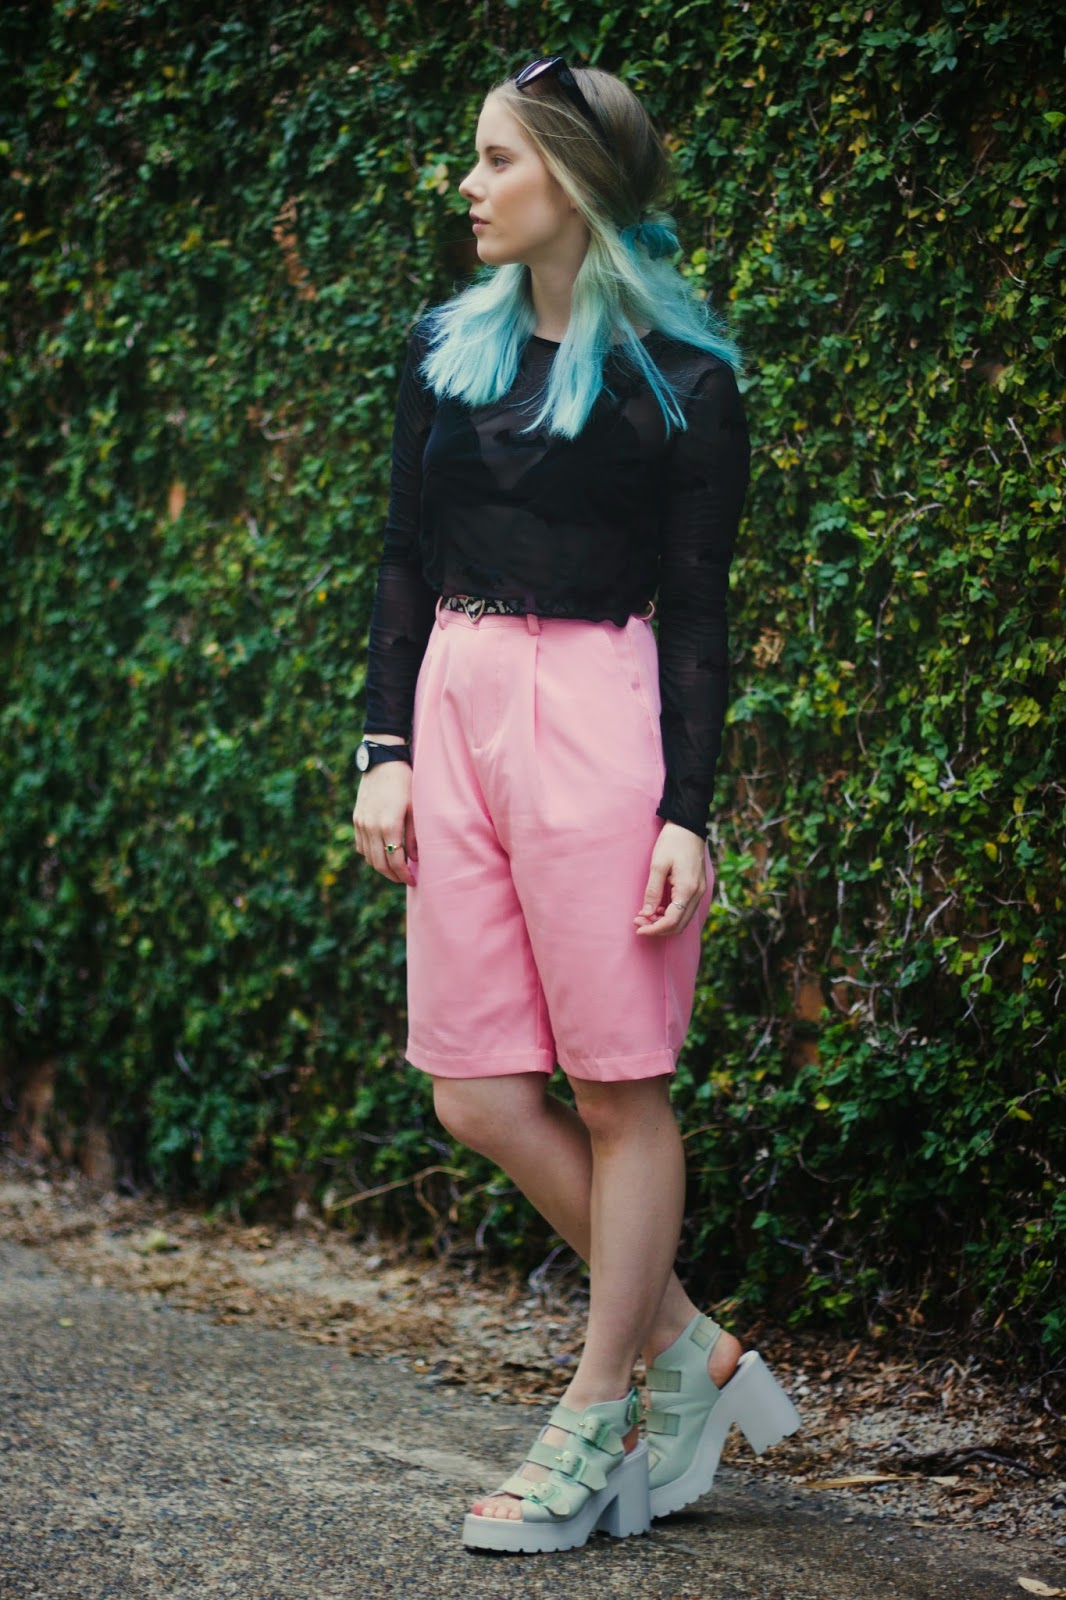 Pip O'Sullivan fashion blog, Philippa O'Sullivan, outsideiscolours, outside is colours, OOTD, fashion blogger outfit, long pink shorts, Front Row Shop high waist pink shorts, pale pink longline shorts, Miista Amber sandal mint, chunky mint sandals, solestruck miista amber sandals, lazy oaf batman crop top, blue ombre hair, turquoise dip dye hair,